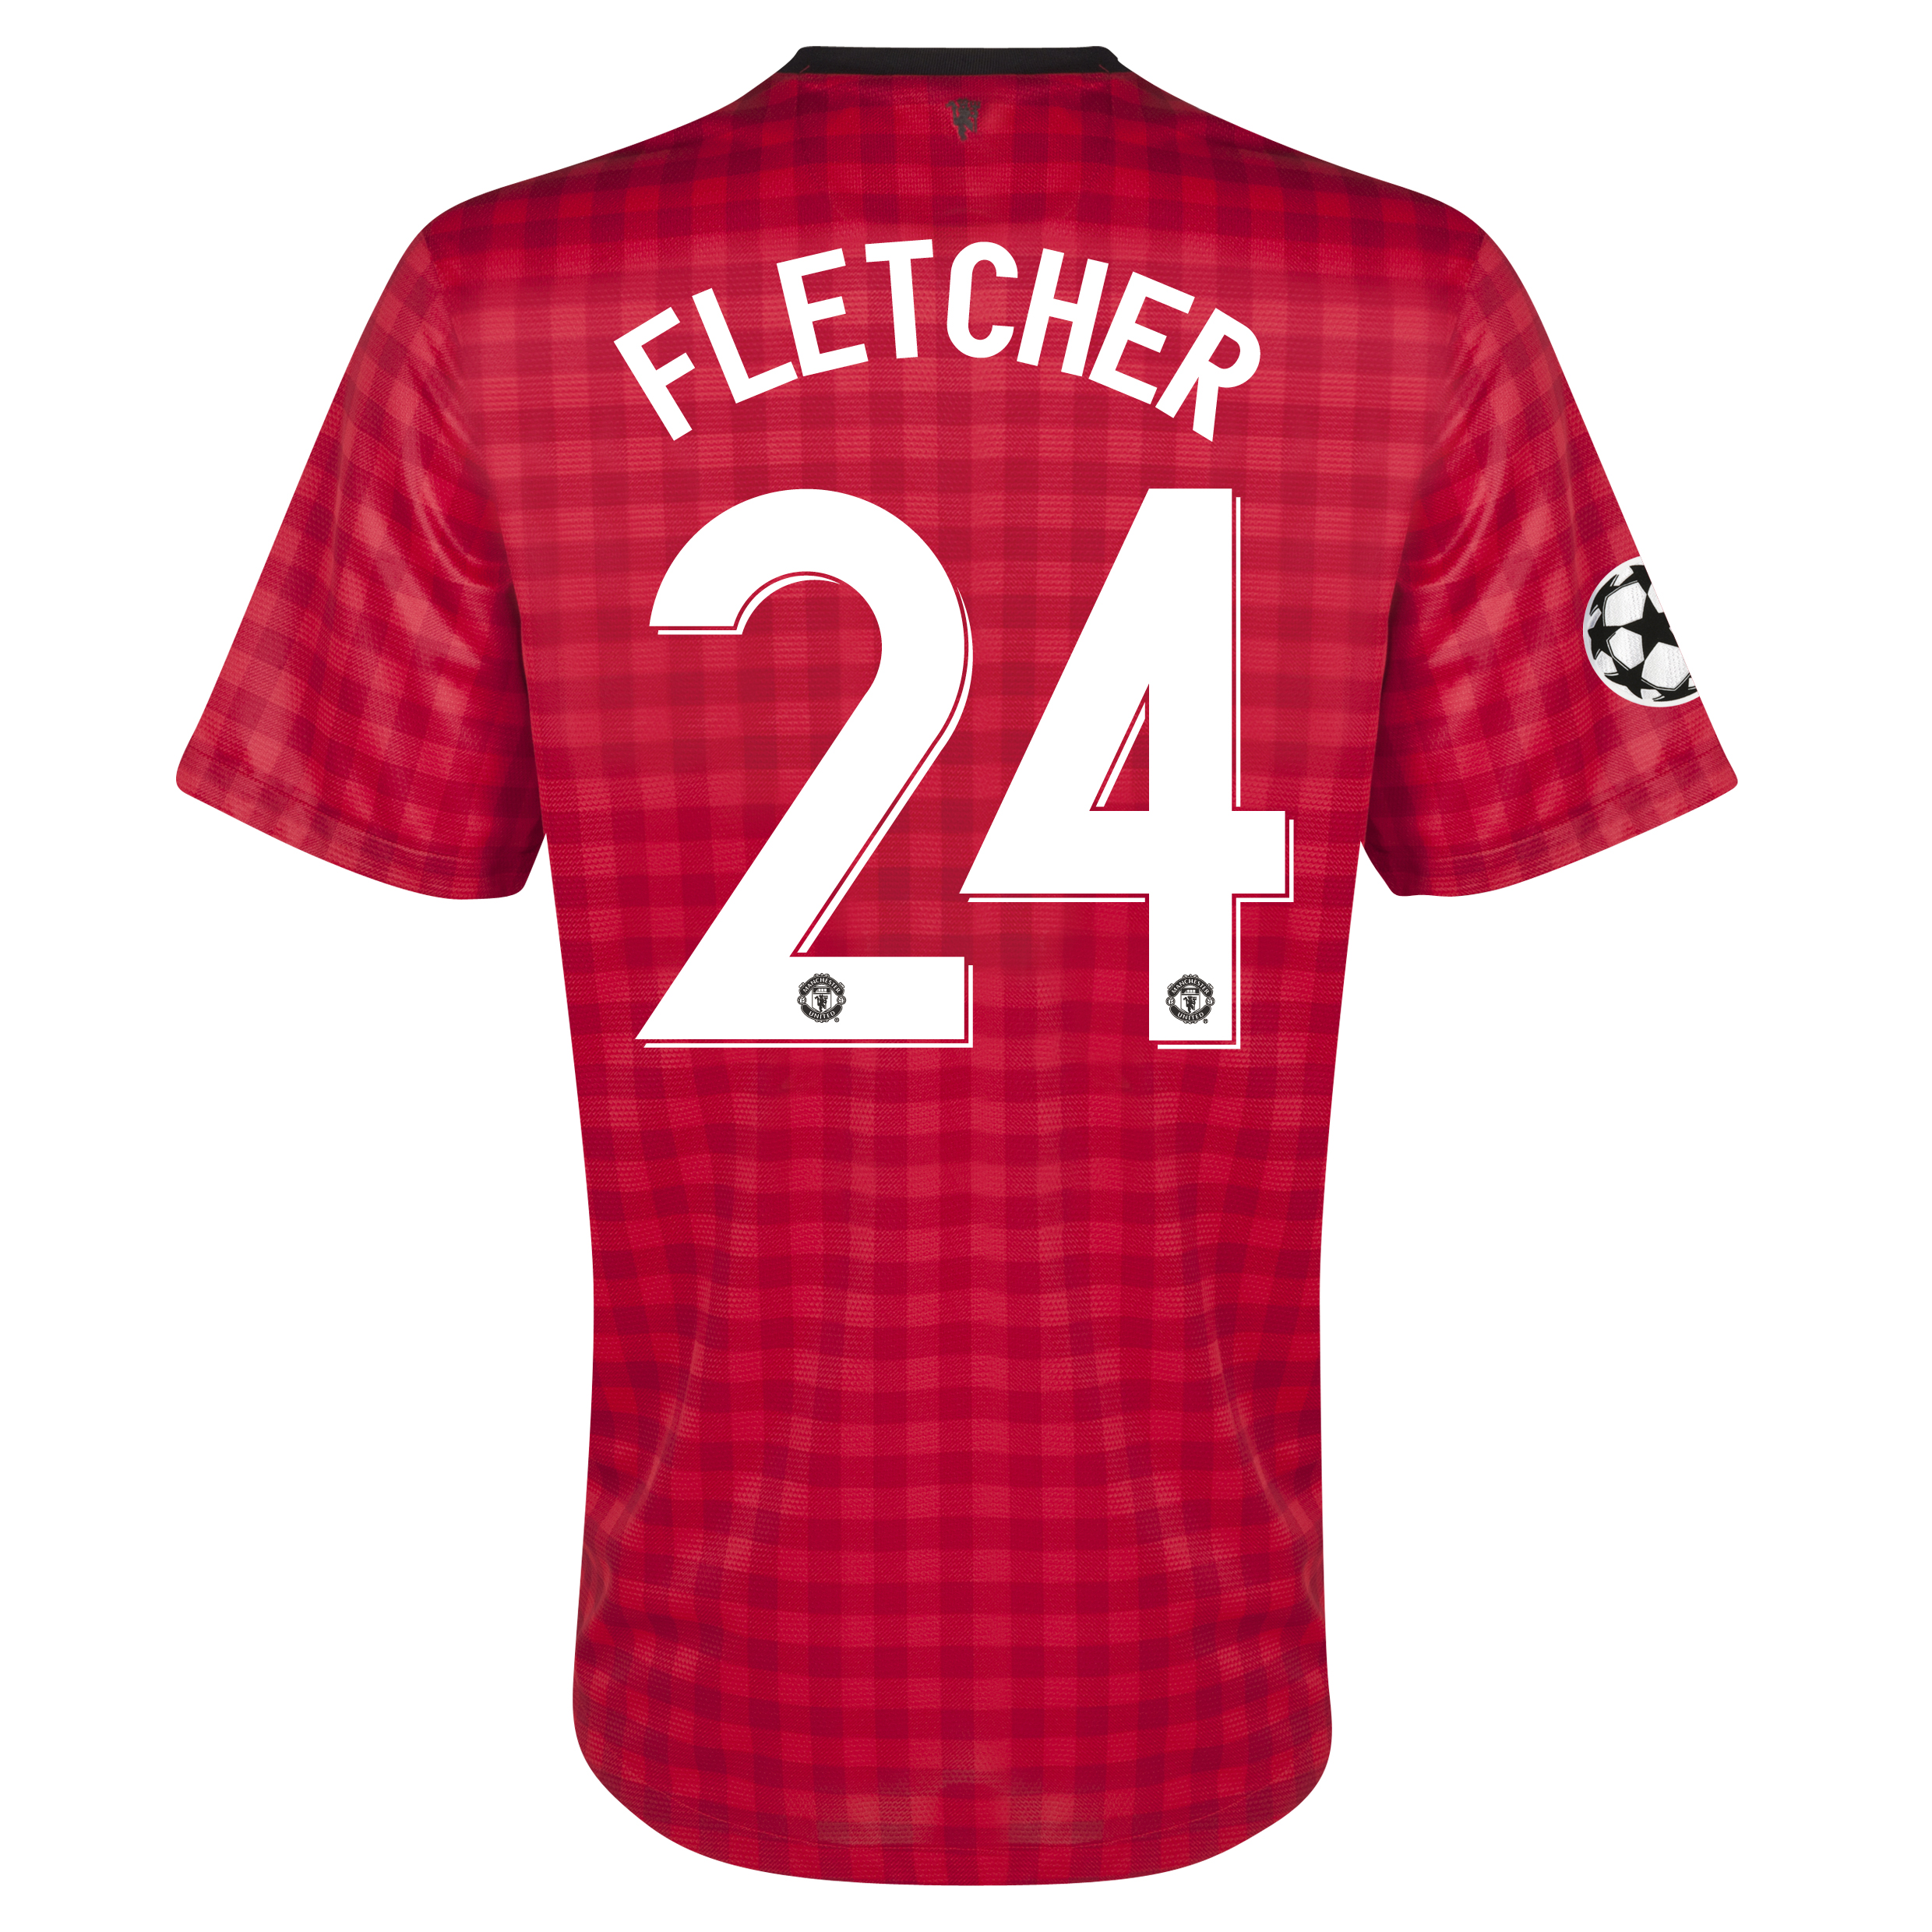 Man United UEFA Champions League Home Shirt 2012/13  - Youths with Fletcher 24 printing